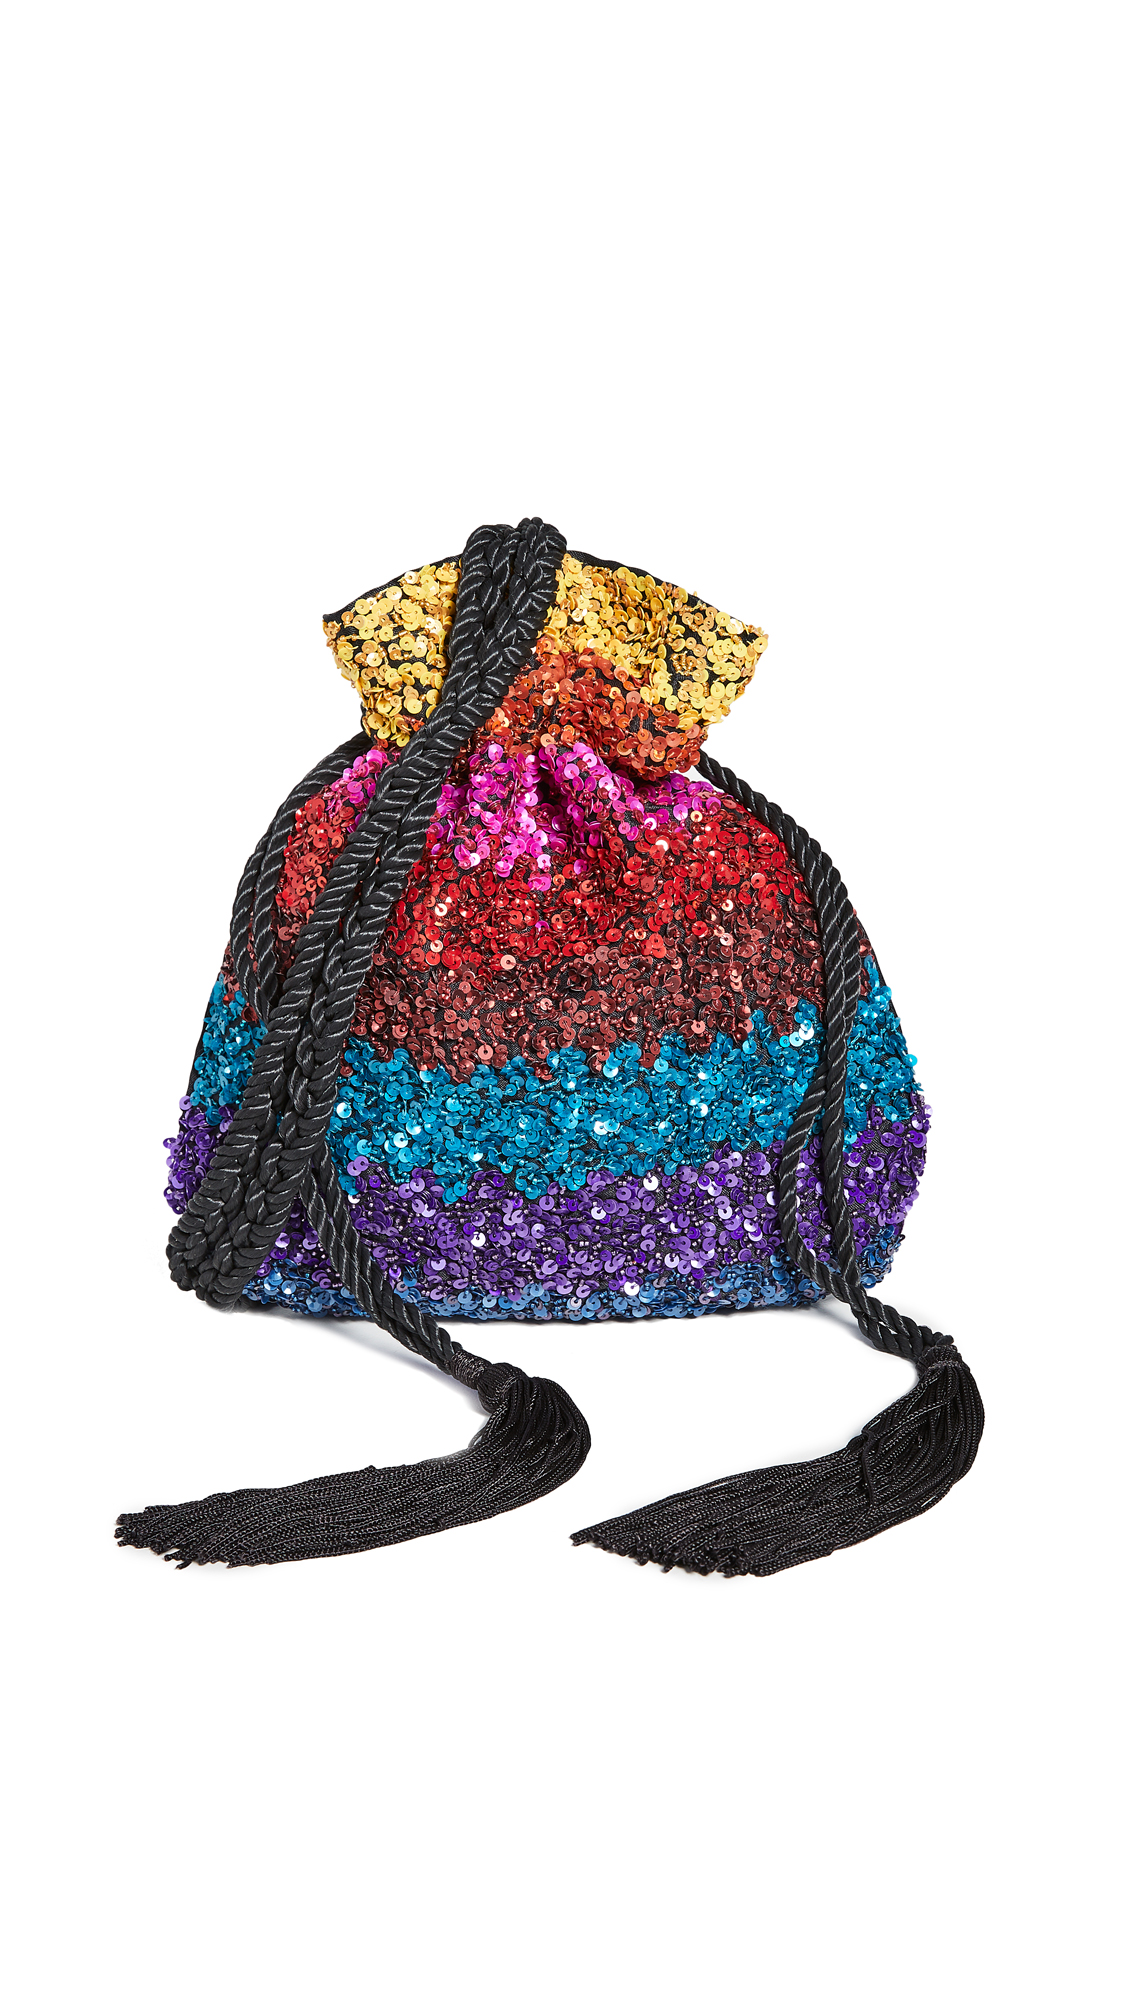 alice + olivia Rope Embellished Pouch - Multi